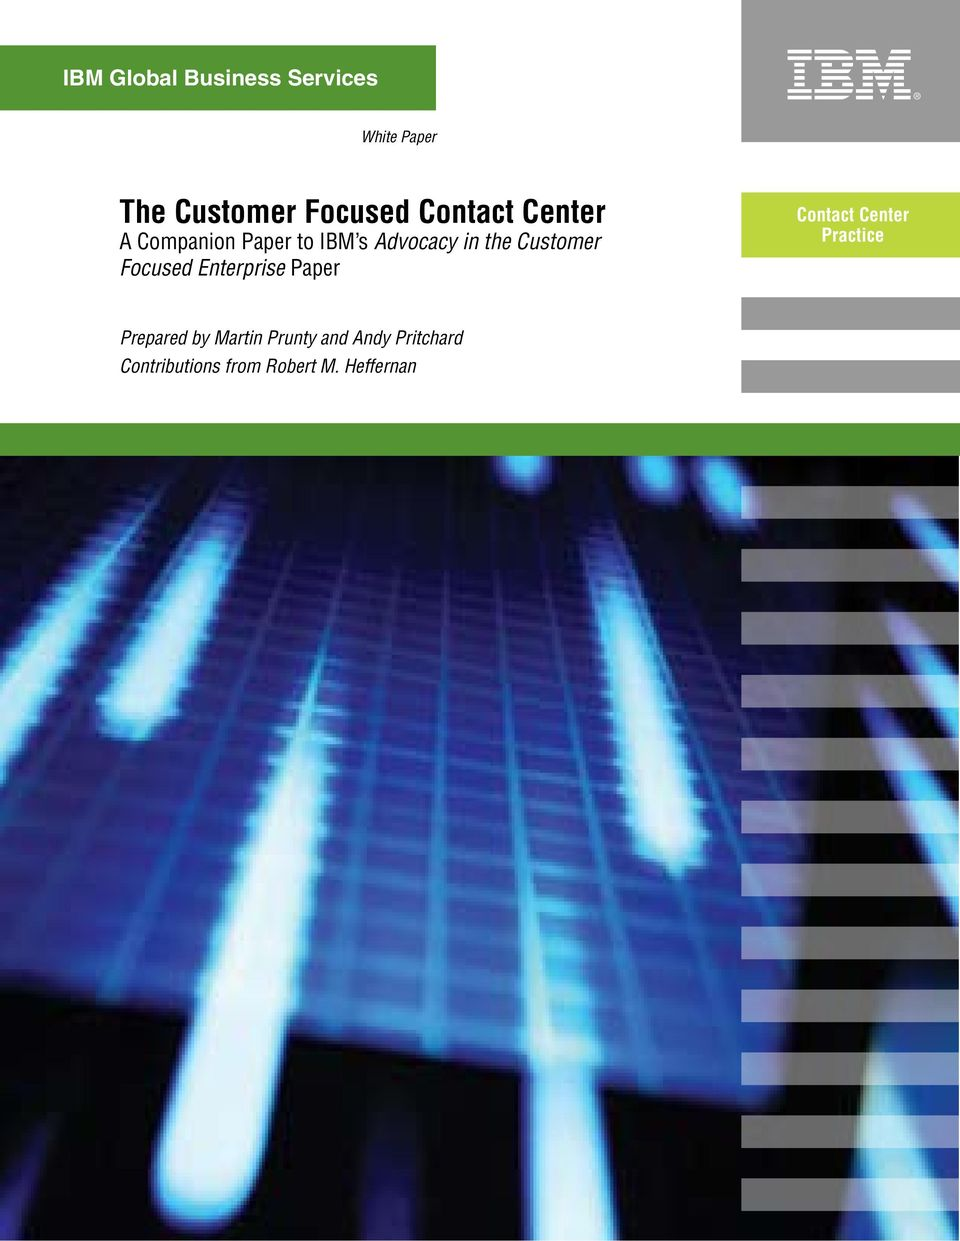 Enterprise Paper Contact Center Practice Prepared by